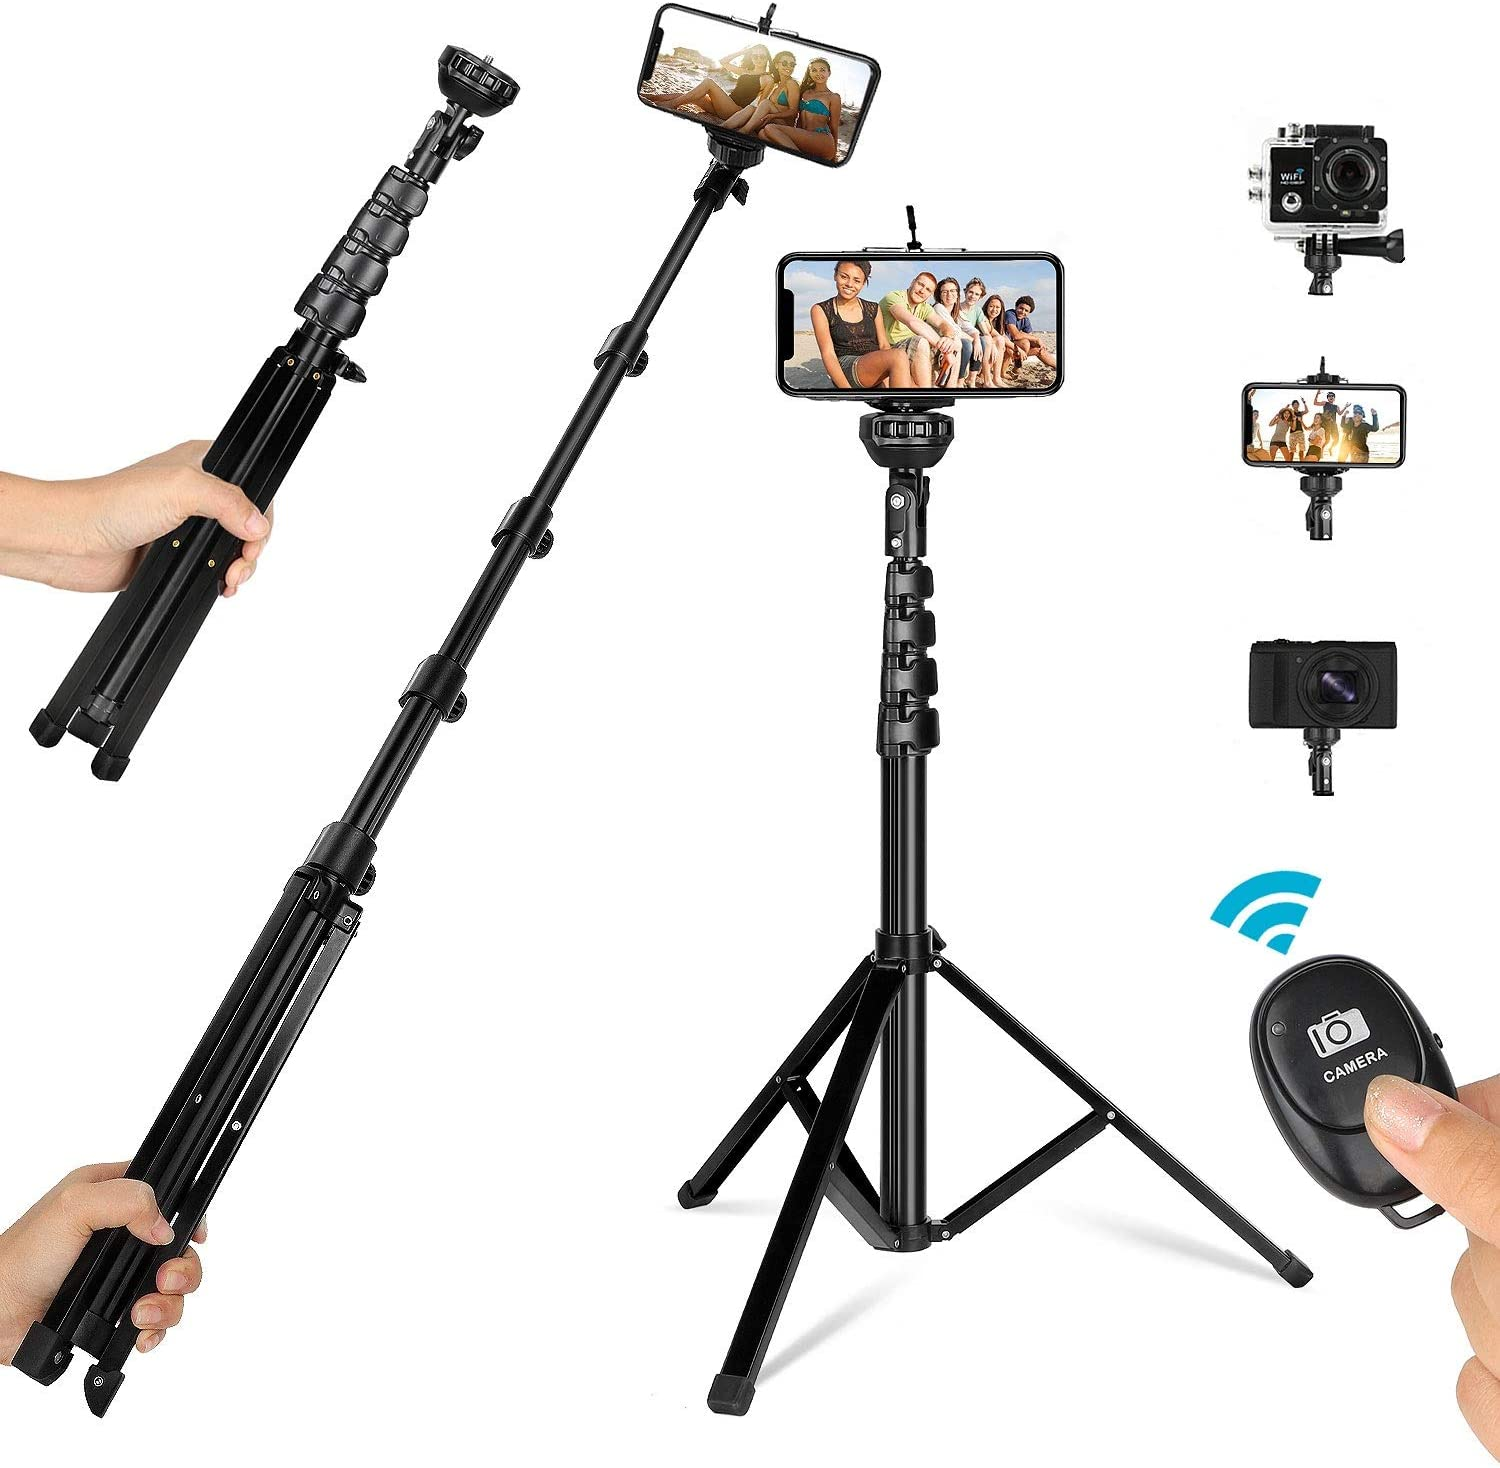 Camera /& Cell Phone Tripod Stand Compatible with iPhone Android Samsung Phones DSLR Action Camera All-in-One Extendable Selfie Stick Tripod with Wireless Remote 62 Phone Tripod